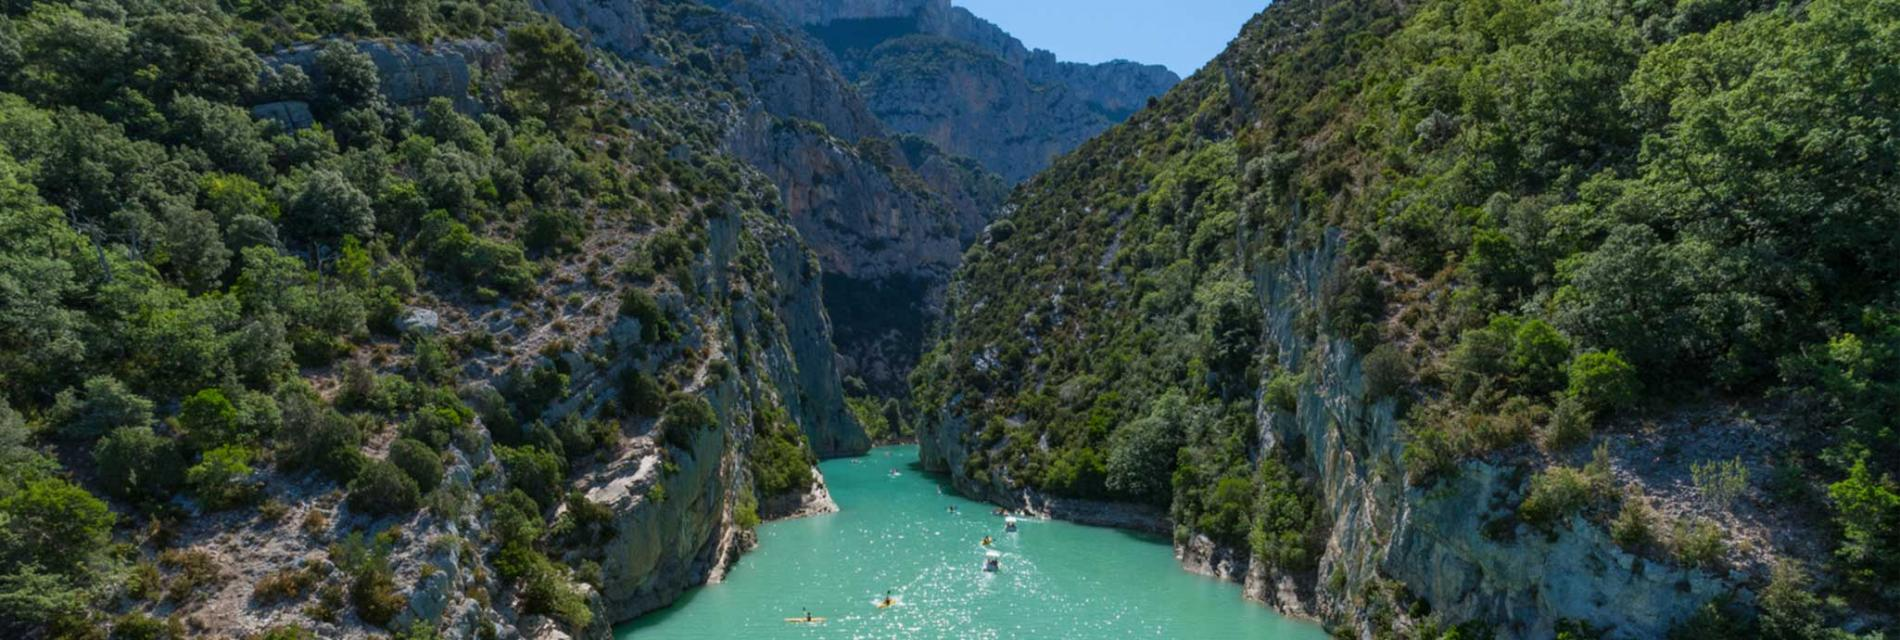 Slide les gorges du verdon